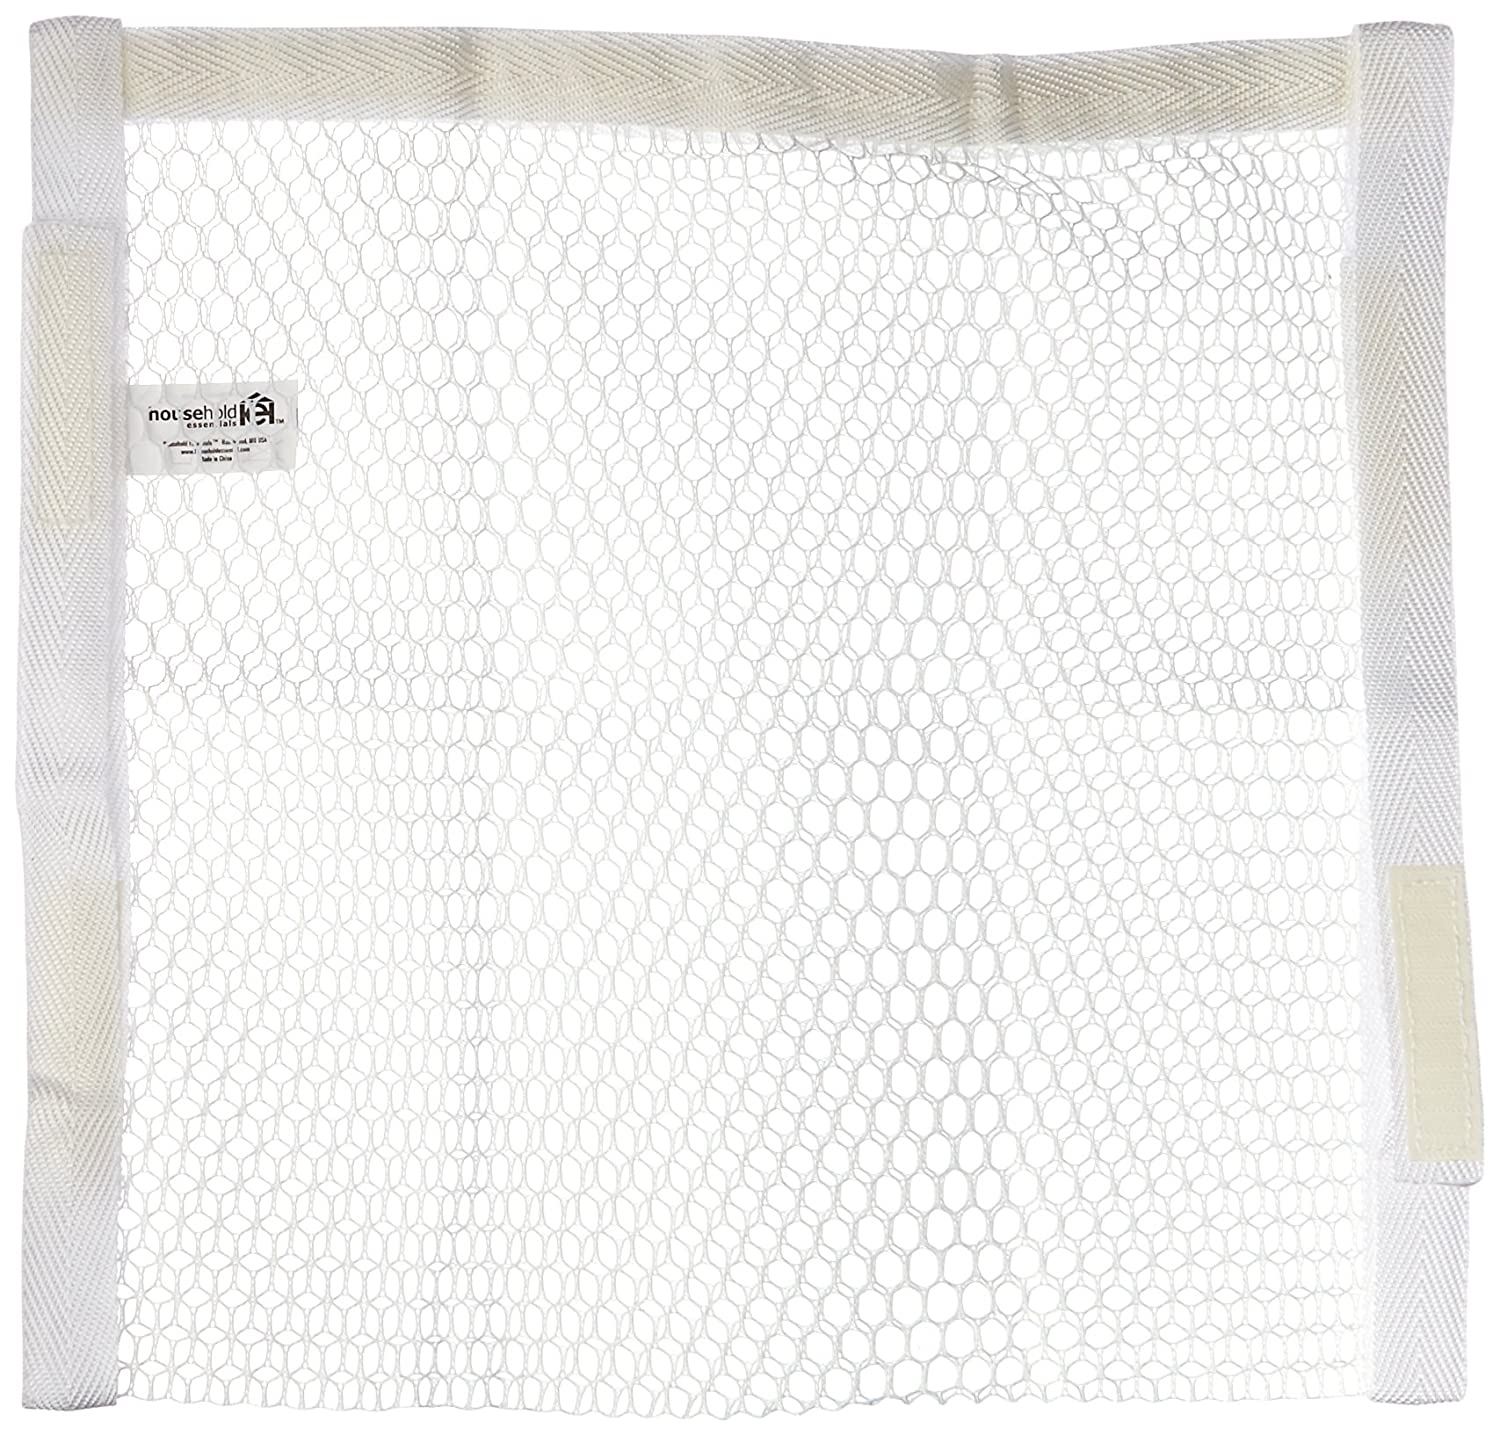 Household Essentials 135 Polyester Sneaker Wash and Dry Bag for Laundry Machines - White Hosuehold Essentials